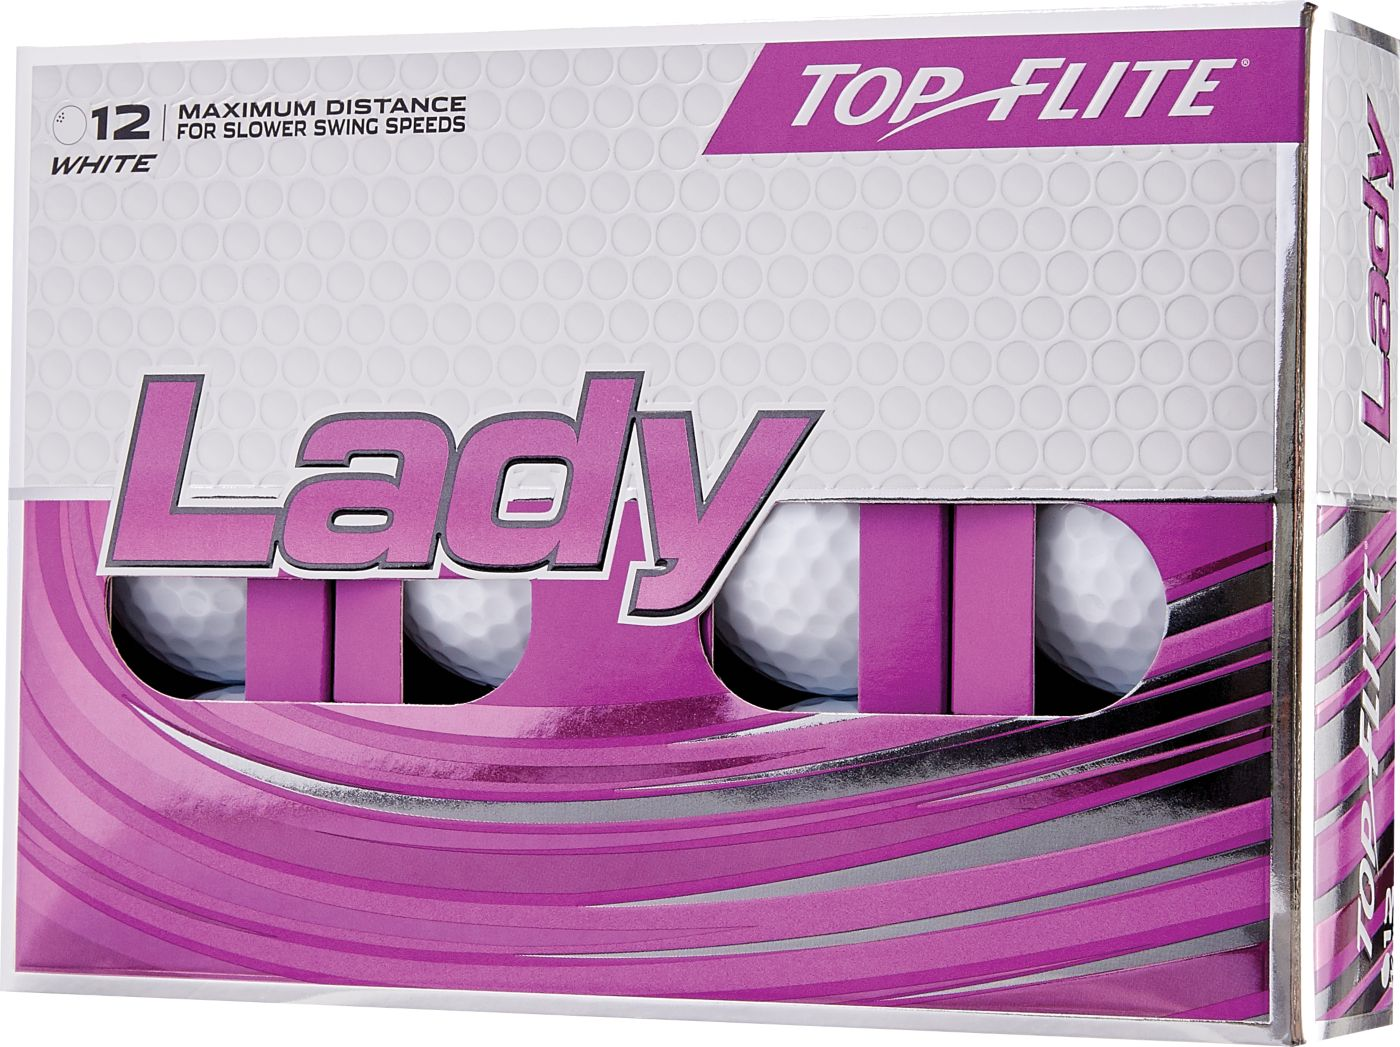 Top Flite Women's 2019 Lady Personalized Golf Balls